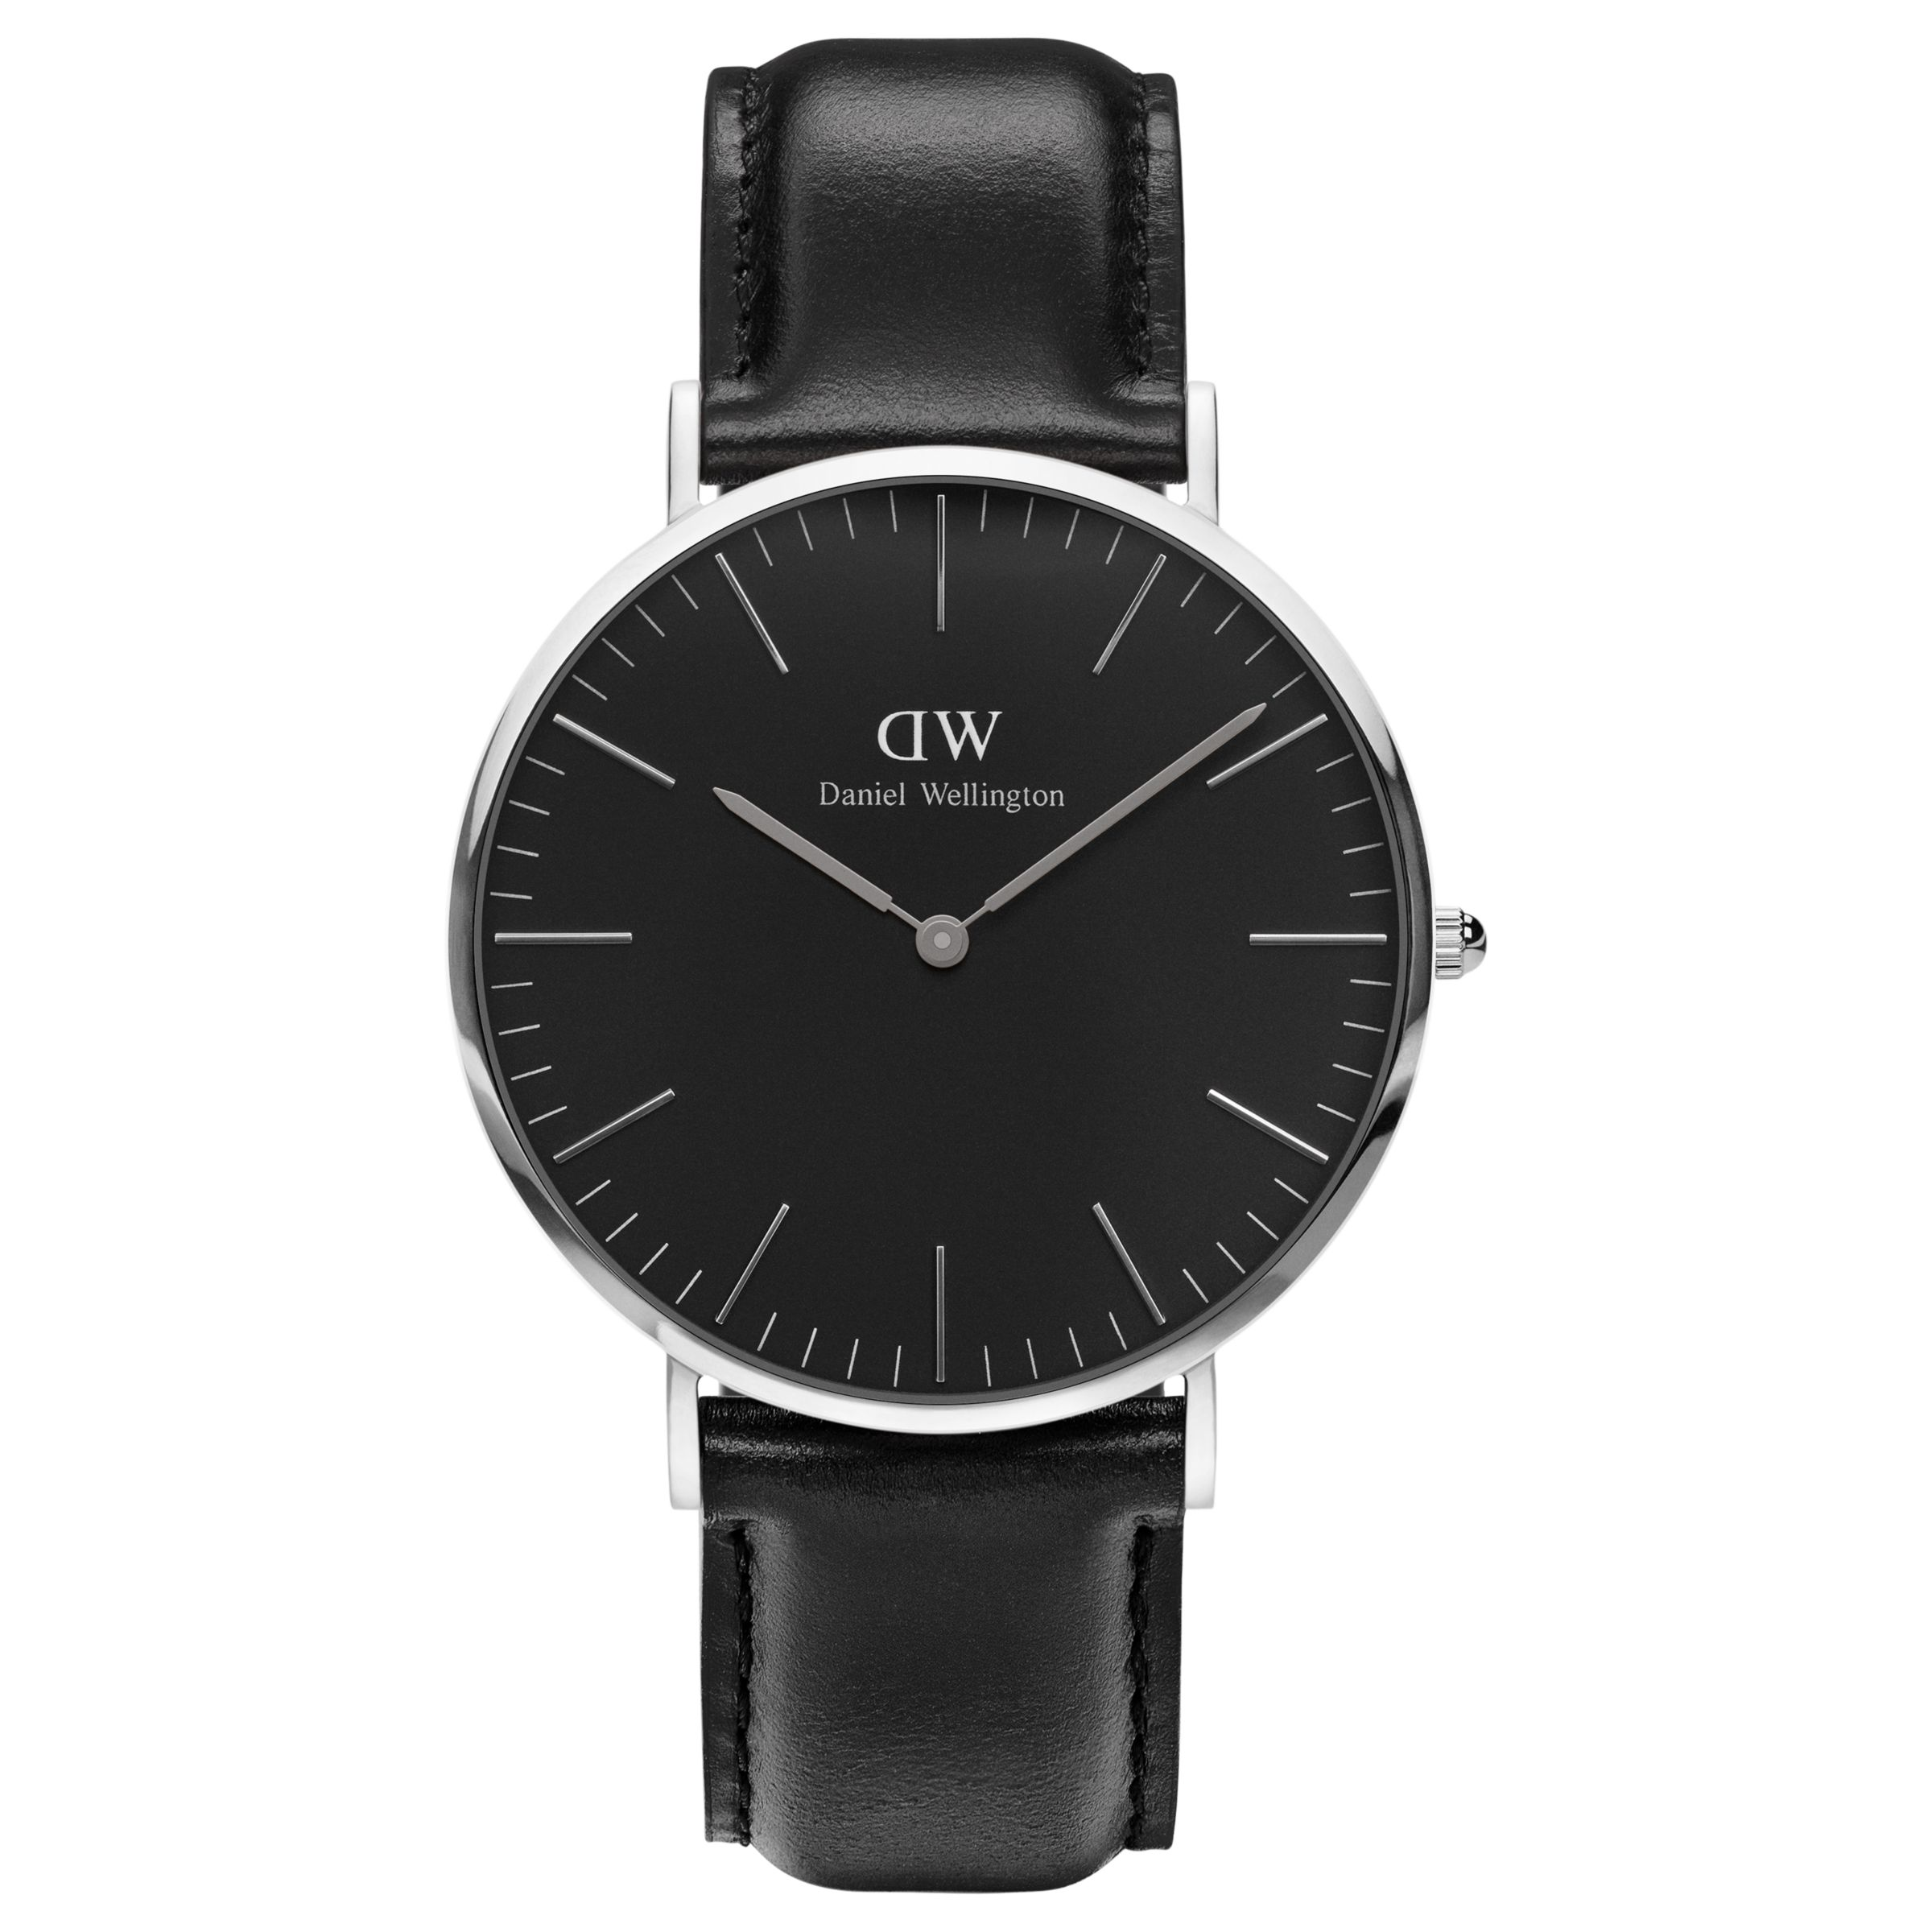 Daniel Wellington Daniel Wellington Unisex 40mm Sheffield Leather Strap Watch